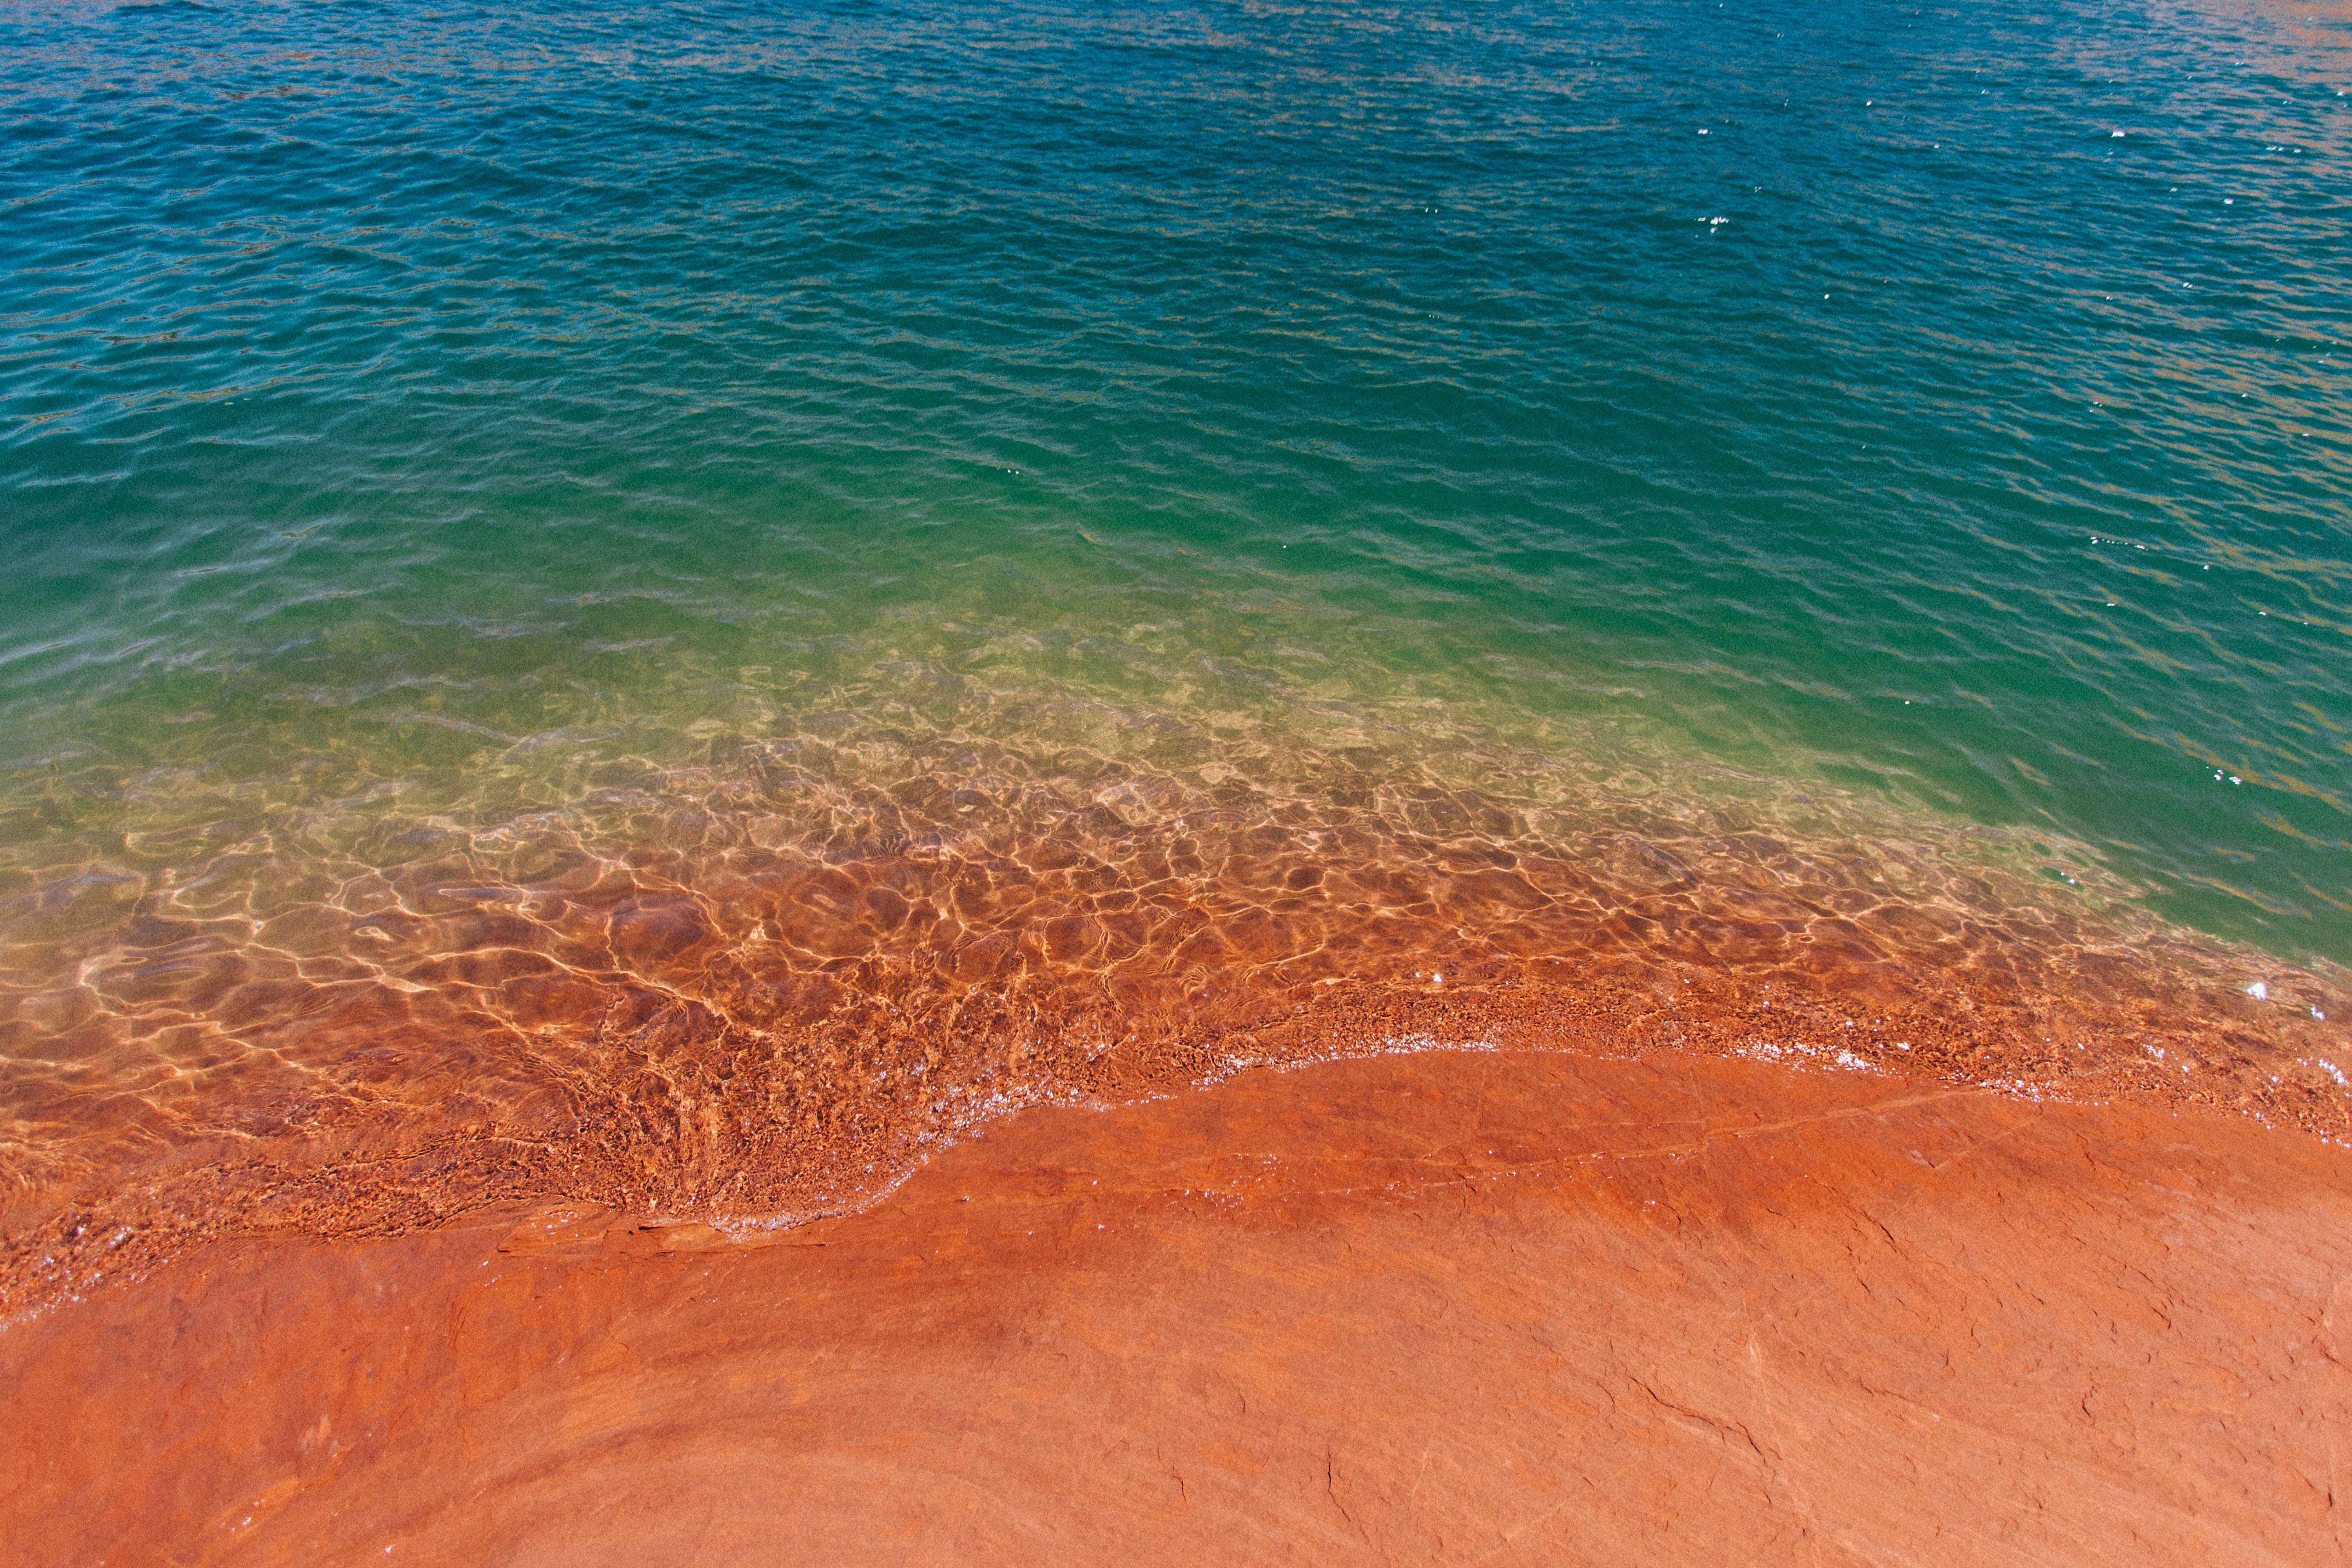 Drone view of the ocean washing on the red sand shore at Lake Powell